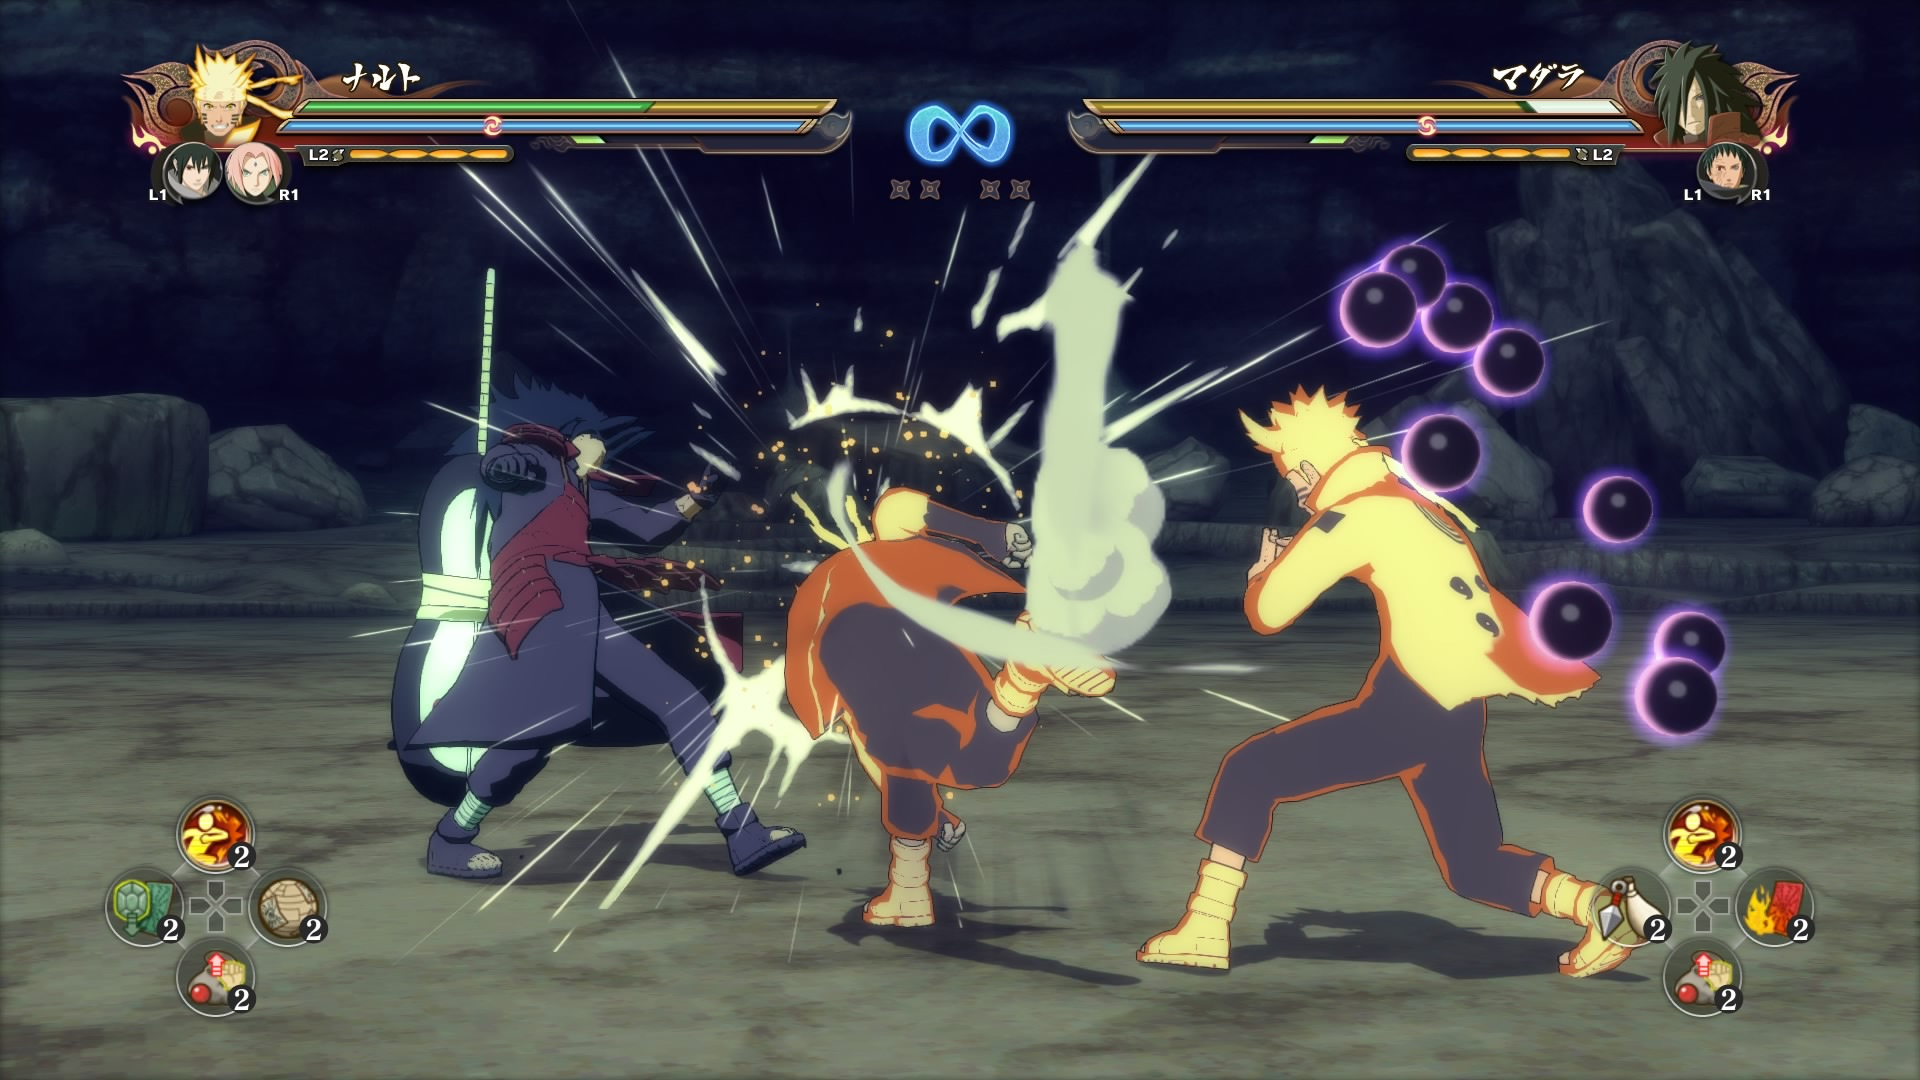 download naruto shippuden ninja storm 4 for ppsspp